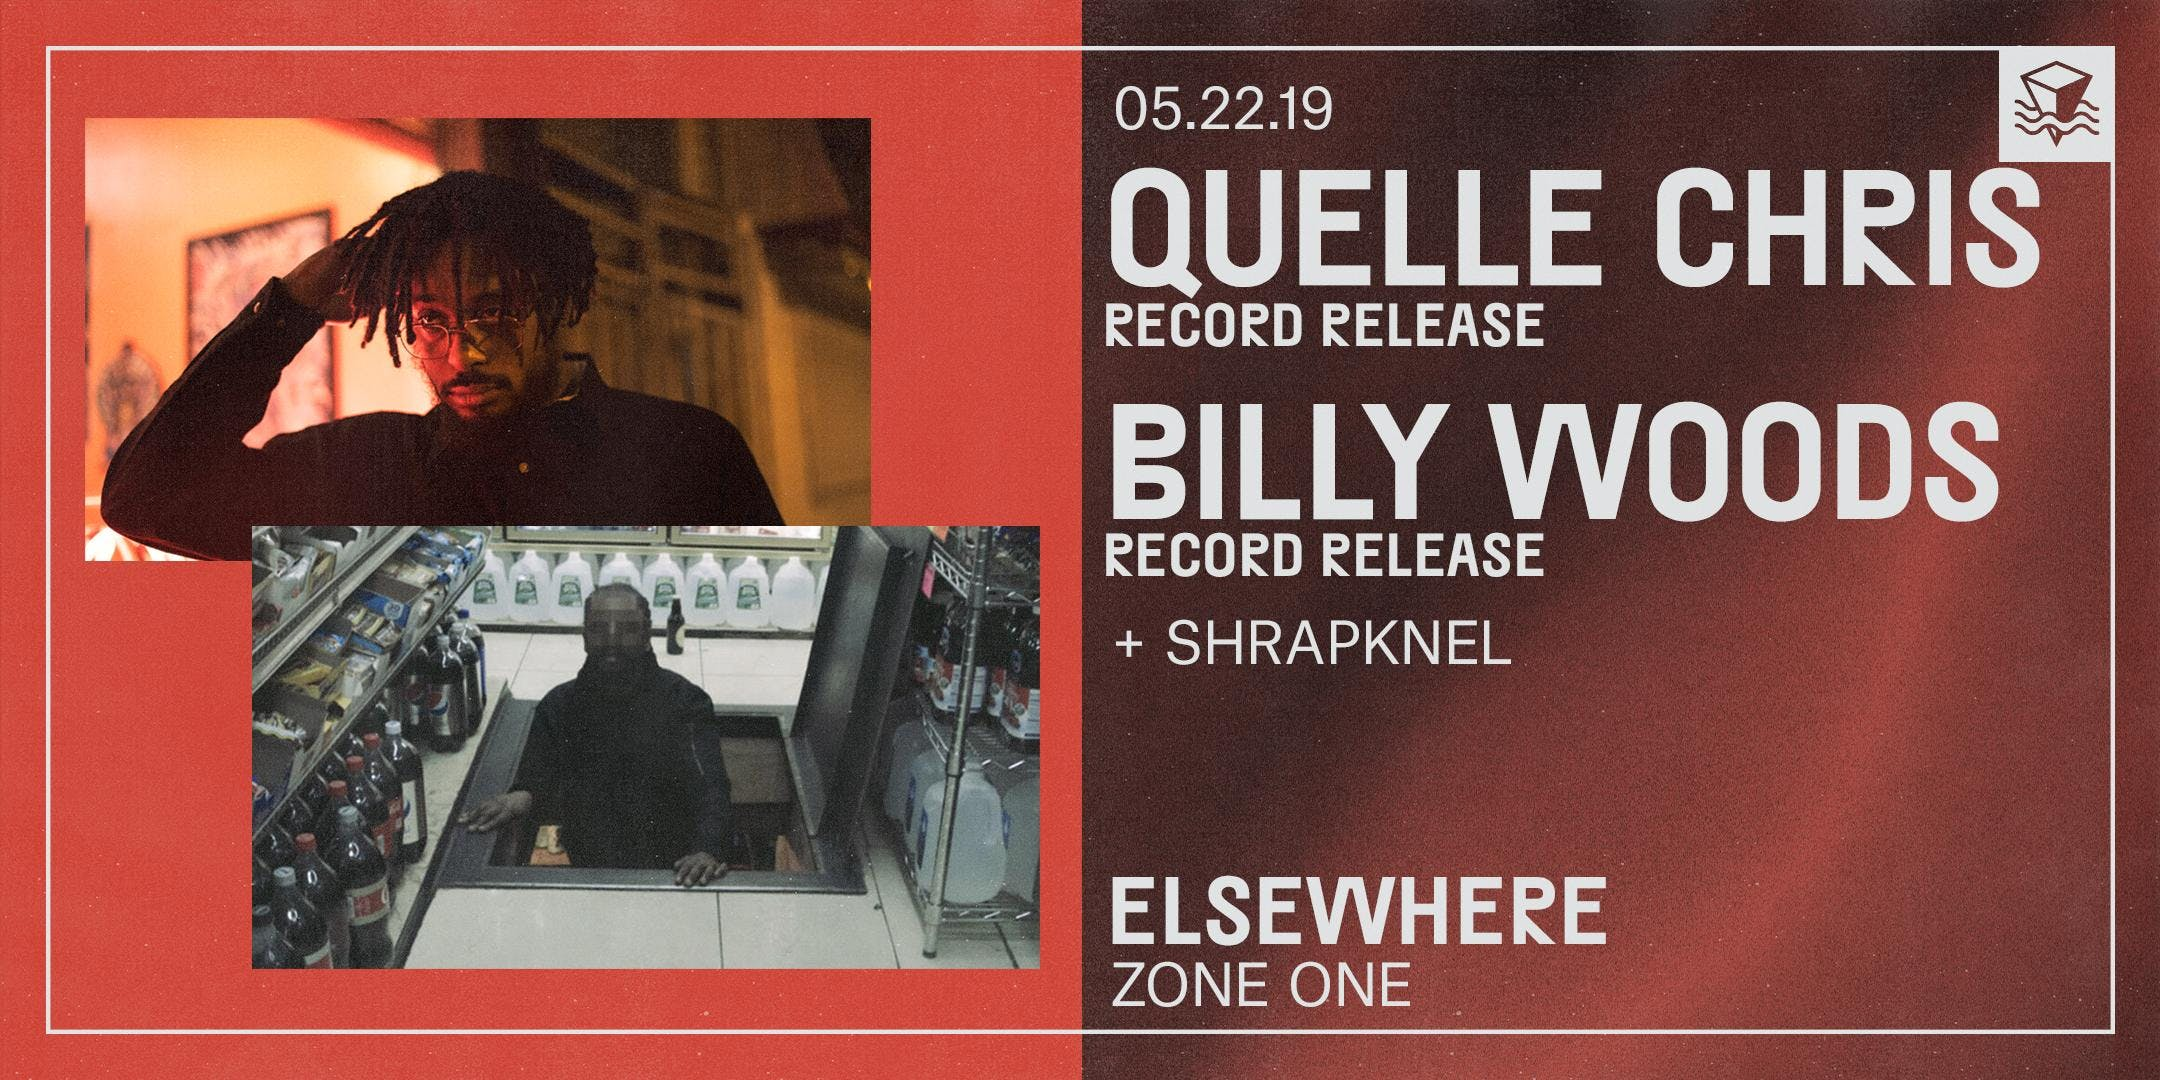 Quelle Chris + Billy Woods (Record Release!)